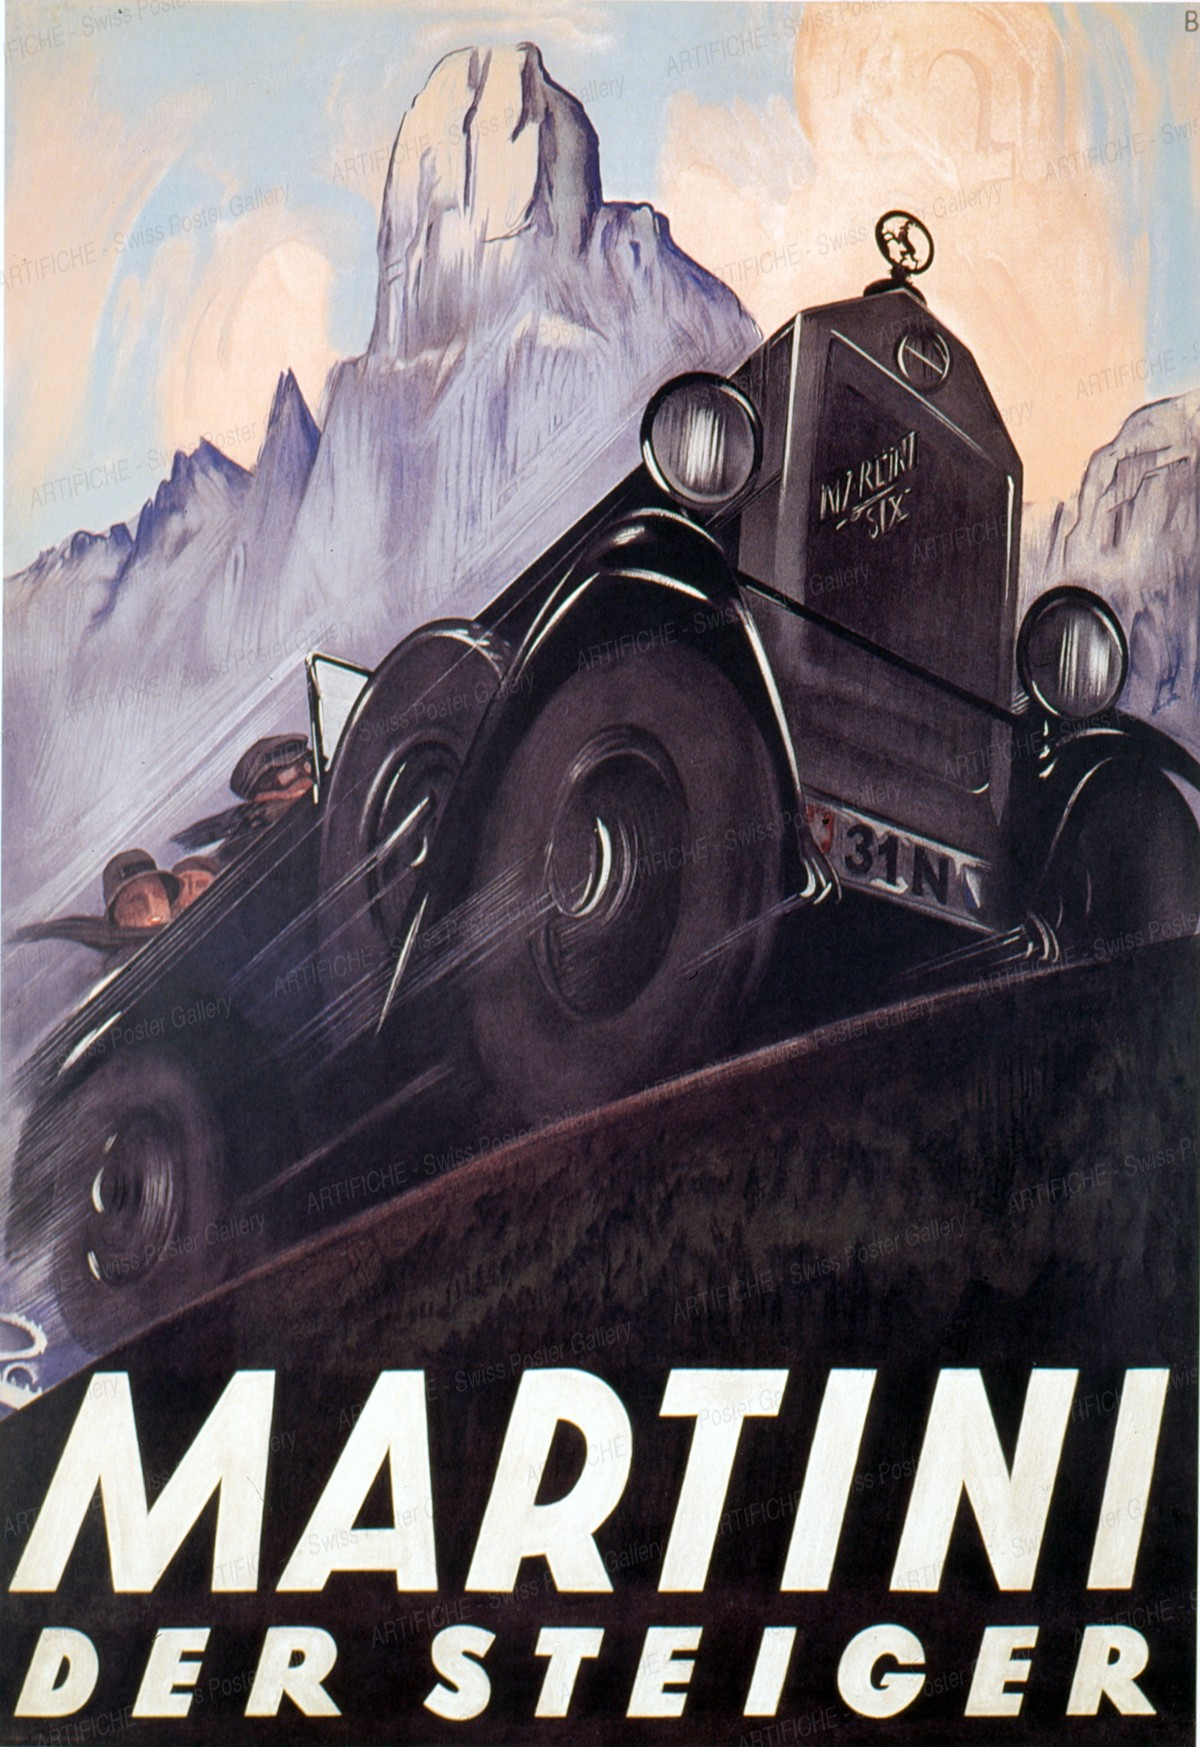 Martini Automobile, Otto Baumberger